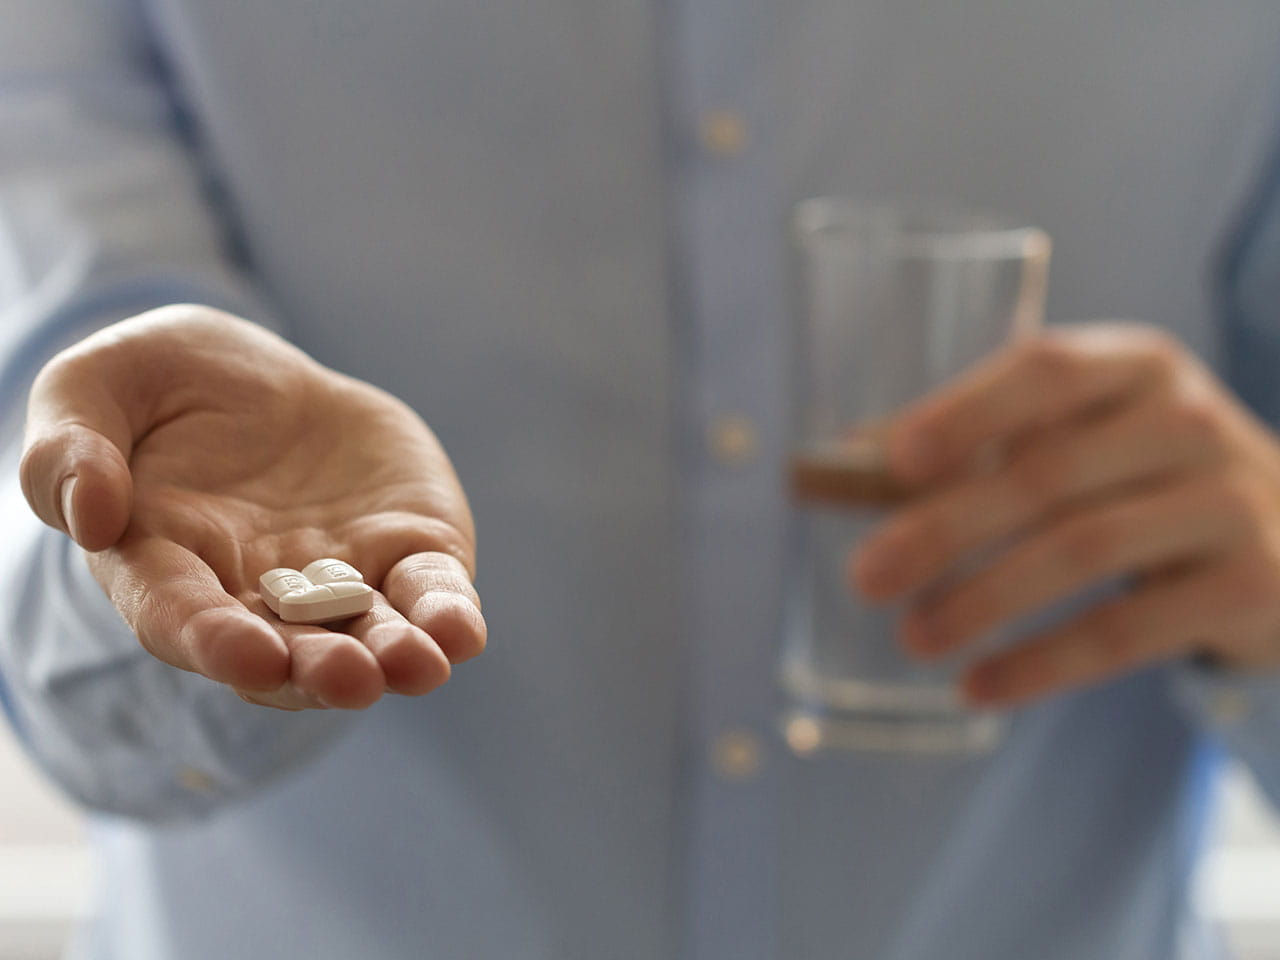 Man holding out his hand with painkillers